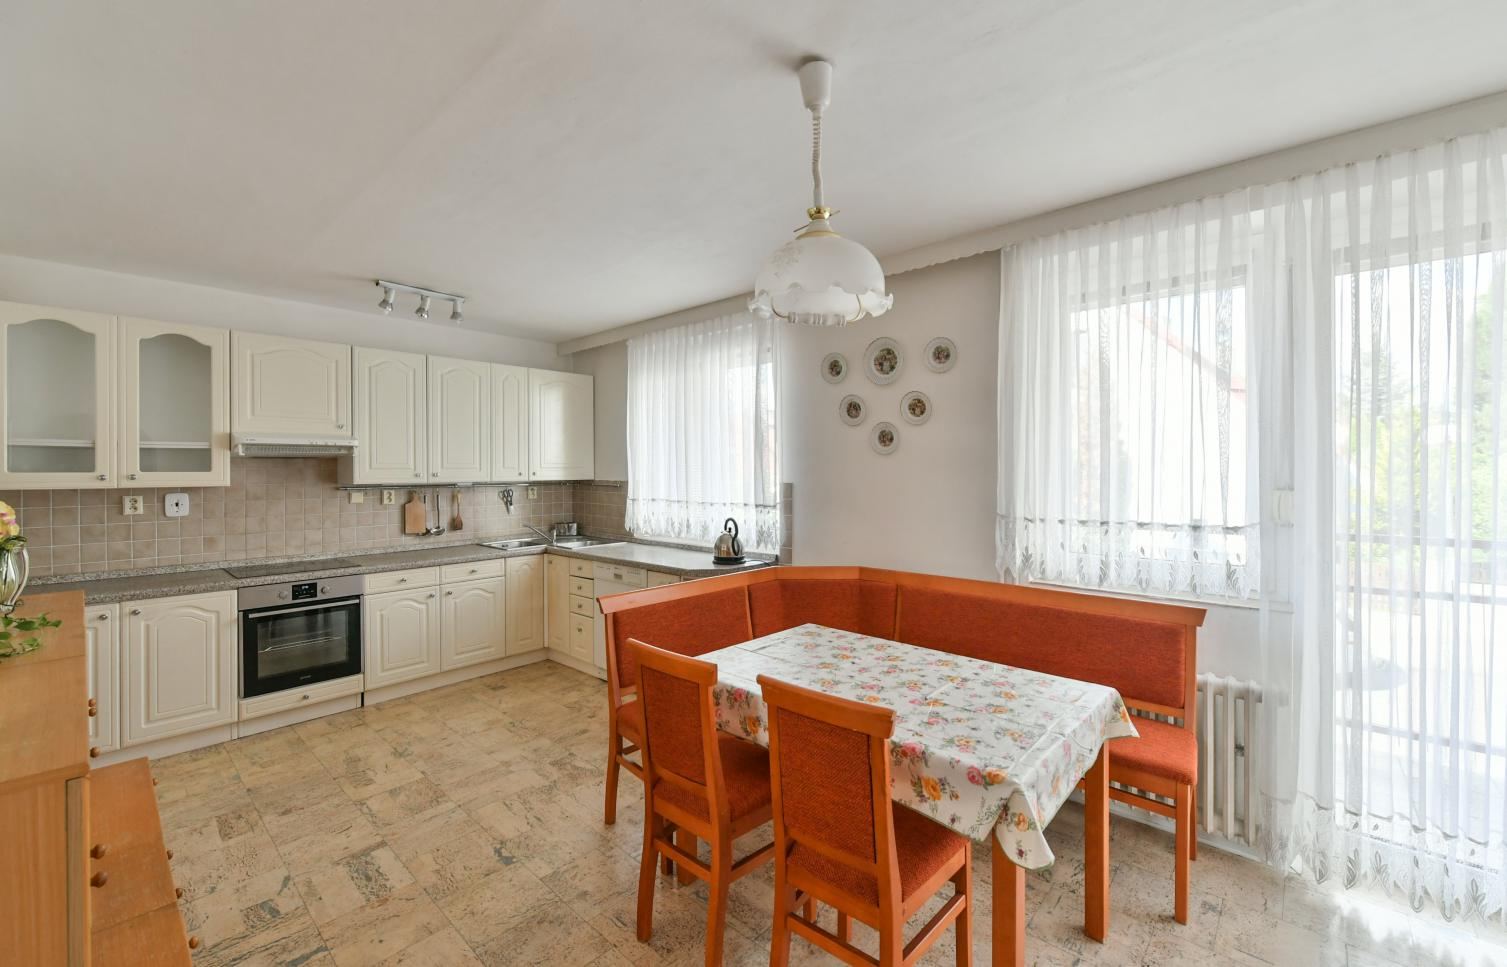 TOWNHOUSE FOR RENT, street Na Fialce I, Praha 17